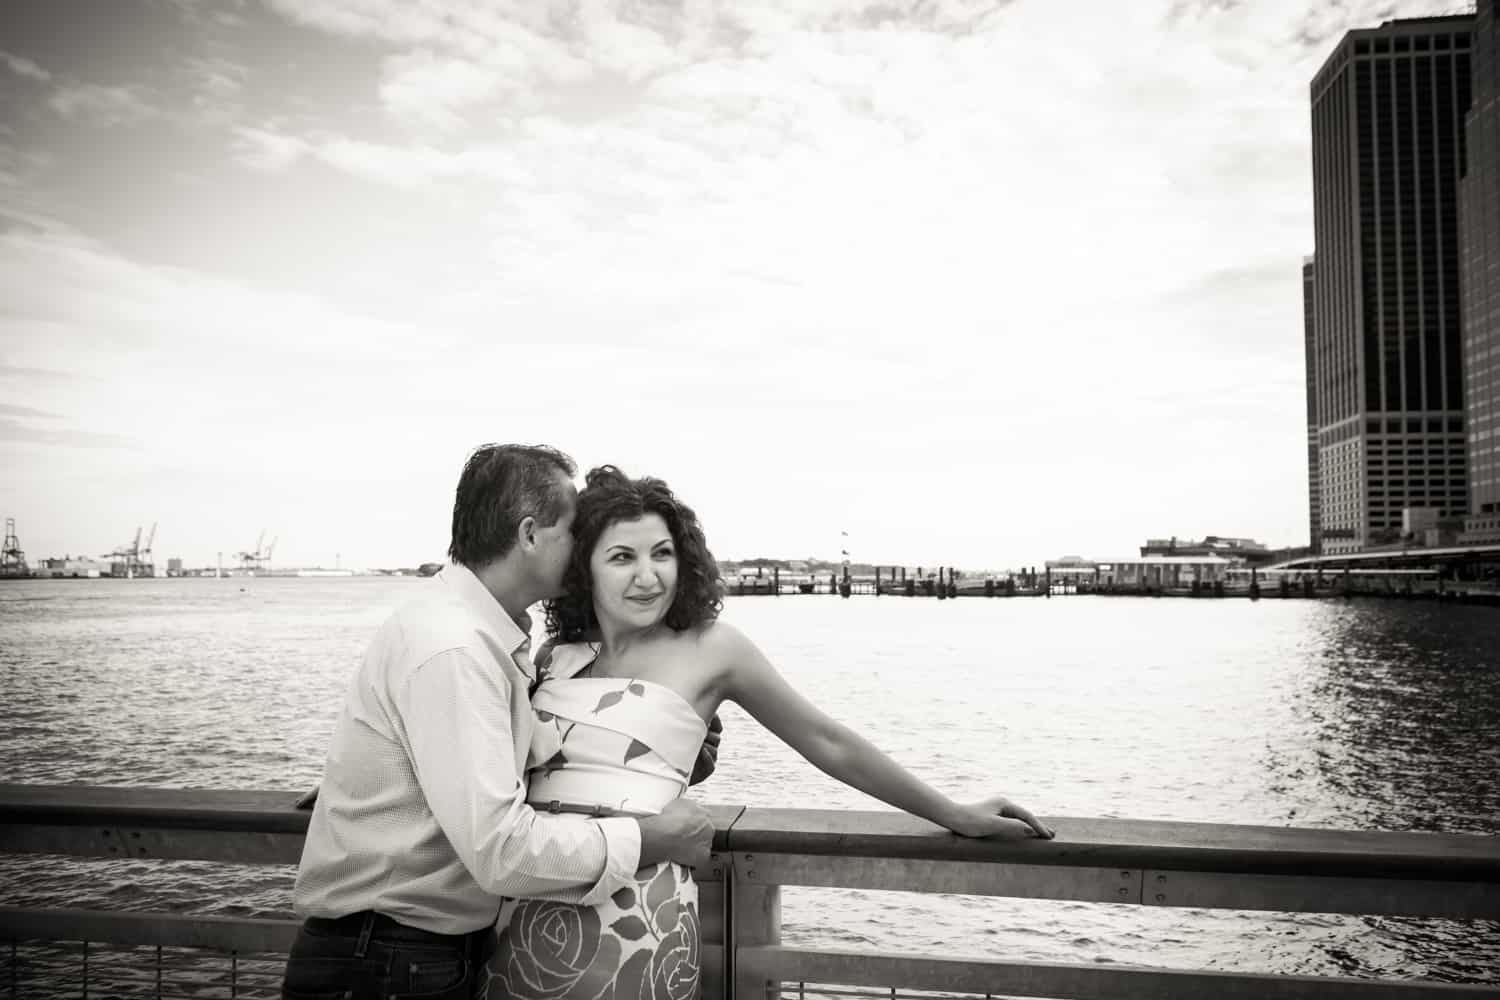 Black and white photo of man kissing woman on railing beside water